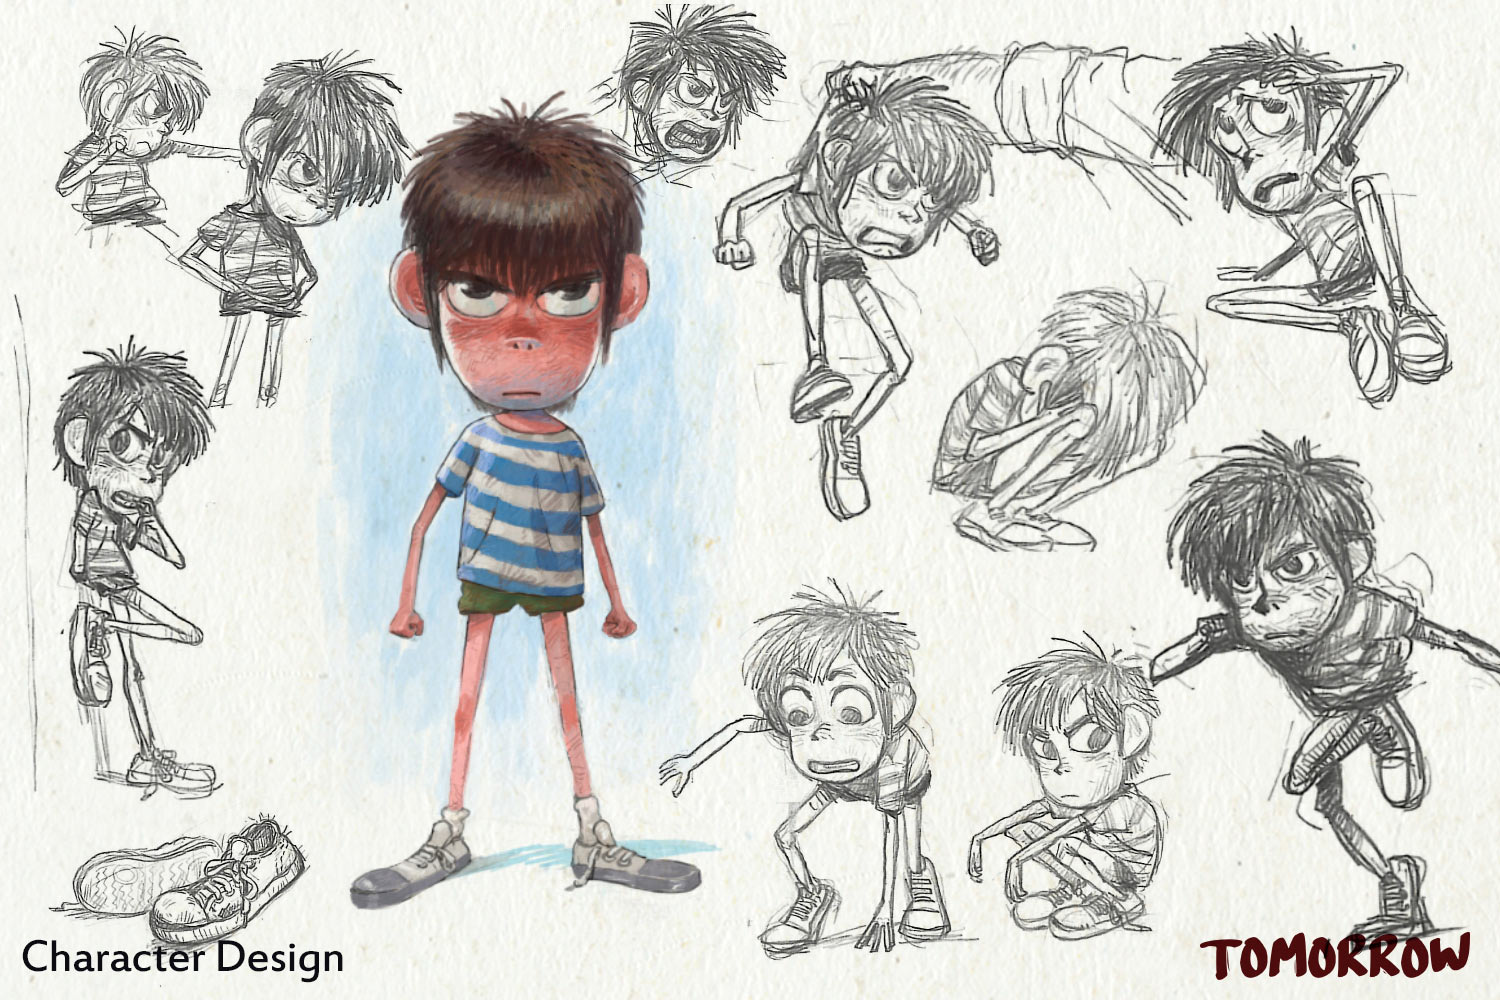 Character design by Mehdi Alibeygi.